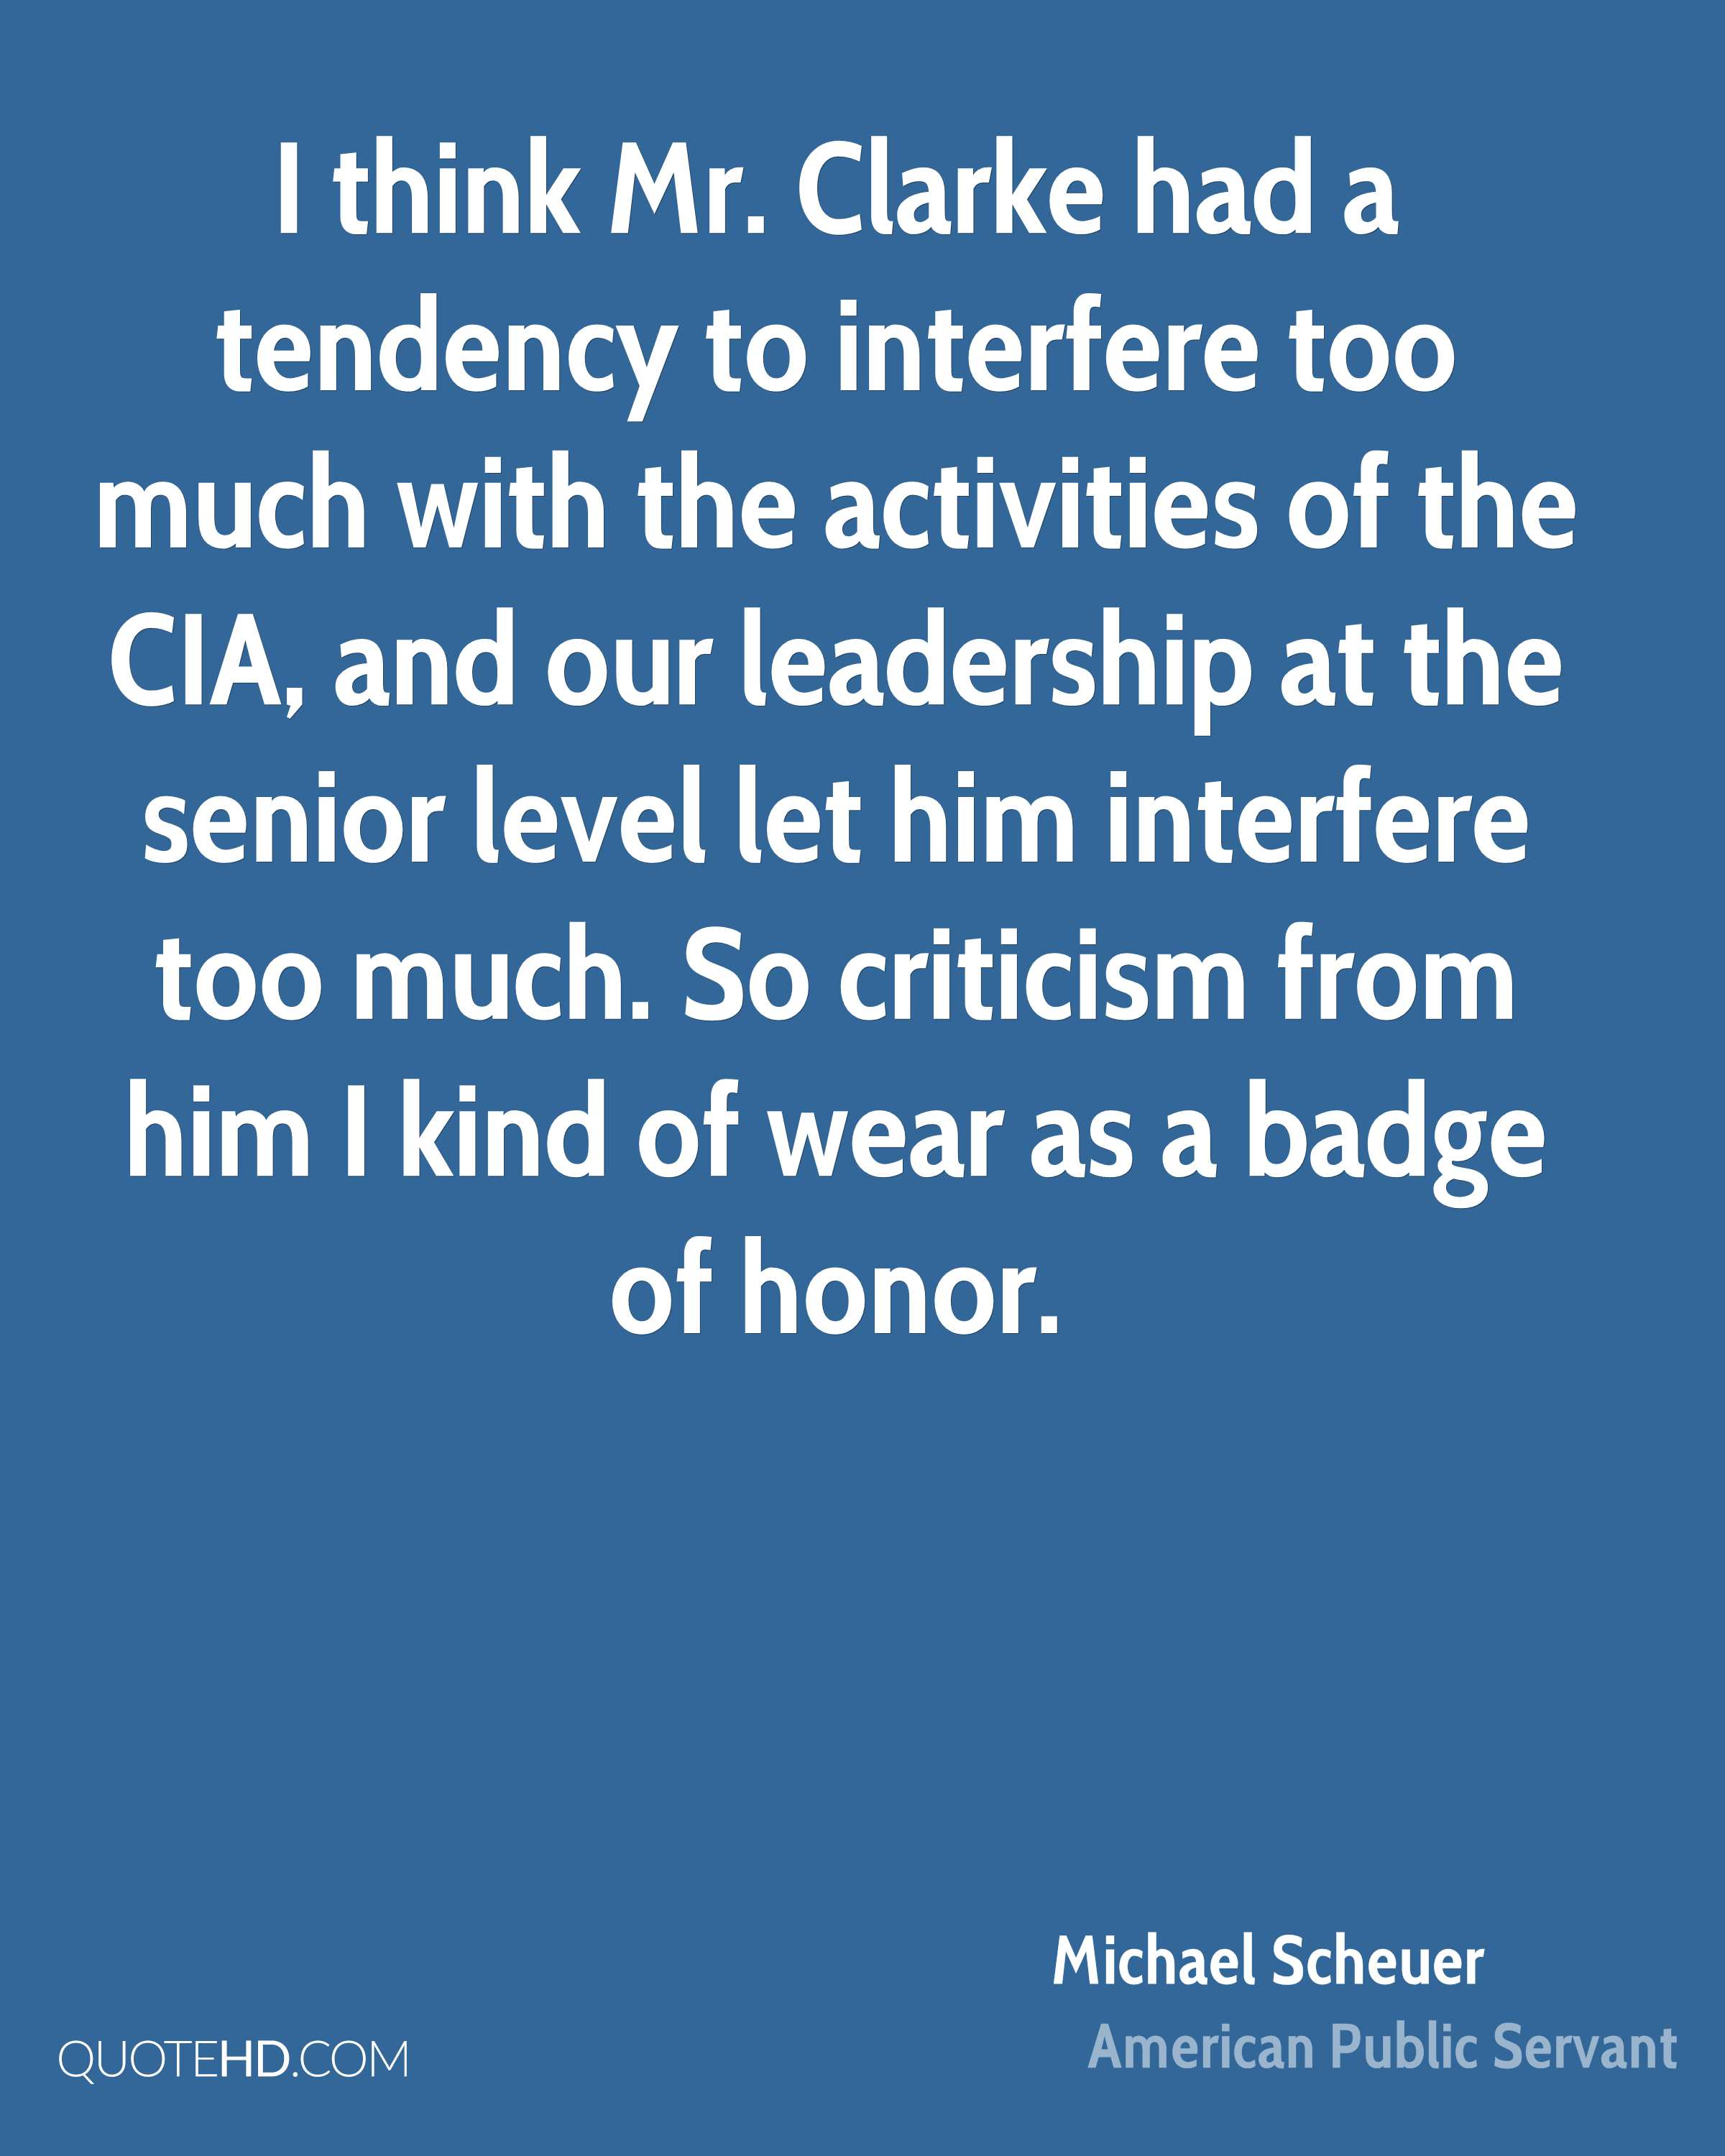 I think Mr. Clarke had a tendency to interfere too much with the activities of the CIA, and our leadership at the senior level let him interfere too much. So criticism from him I kind of wear as a badge of honor.